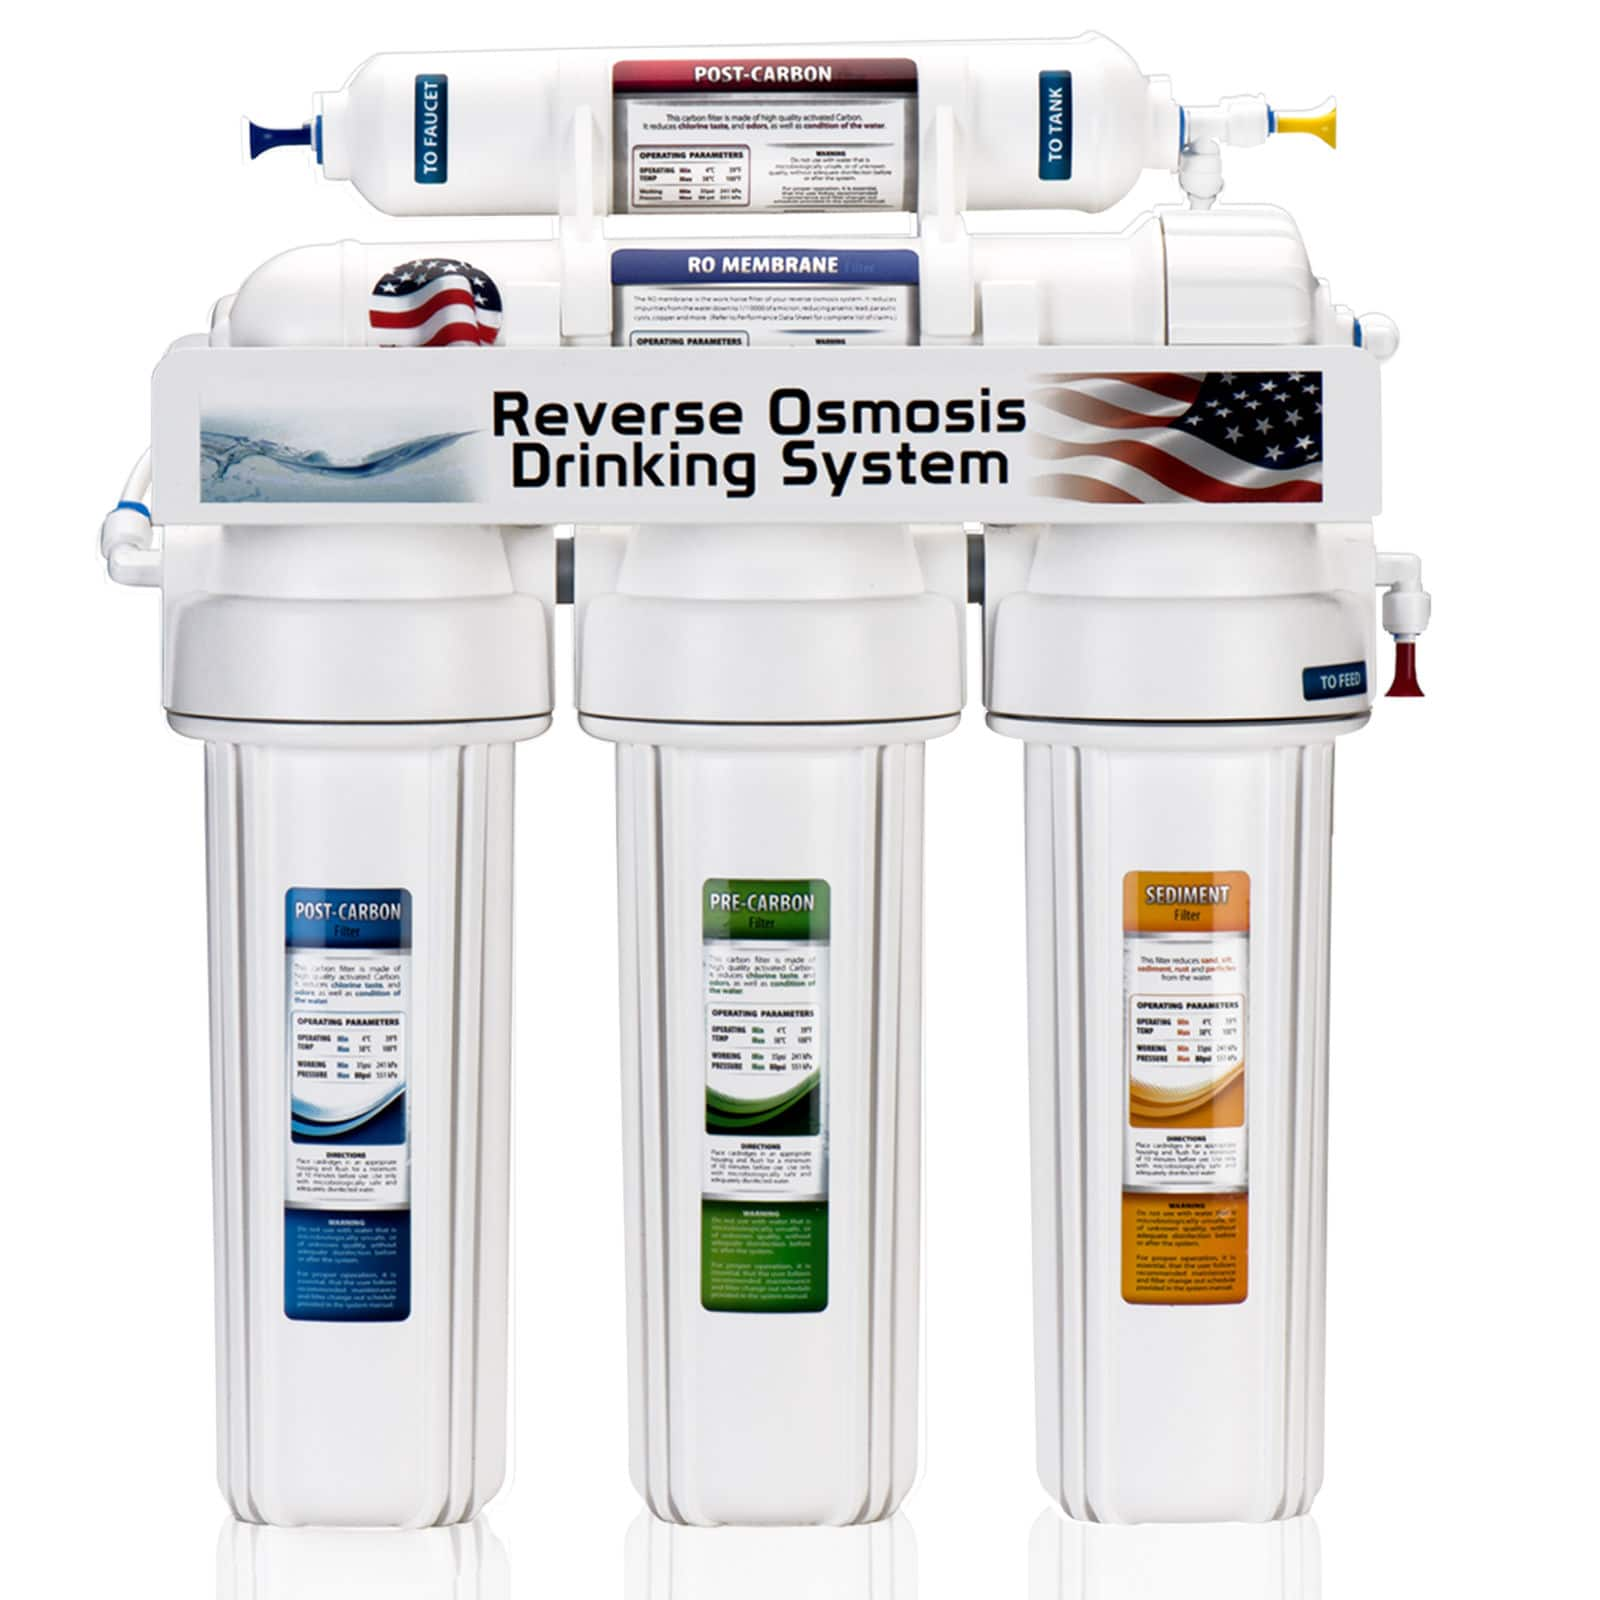 eBay: Express Water Reverse Osmosis Water Filtration System - $89.99 Plus Free Shipping